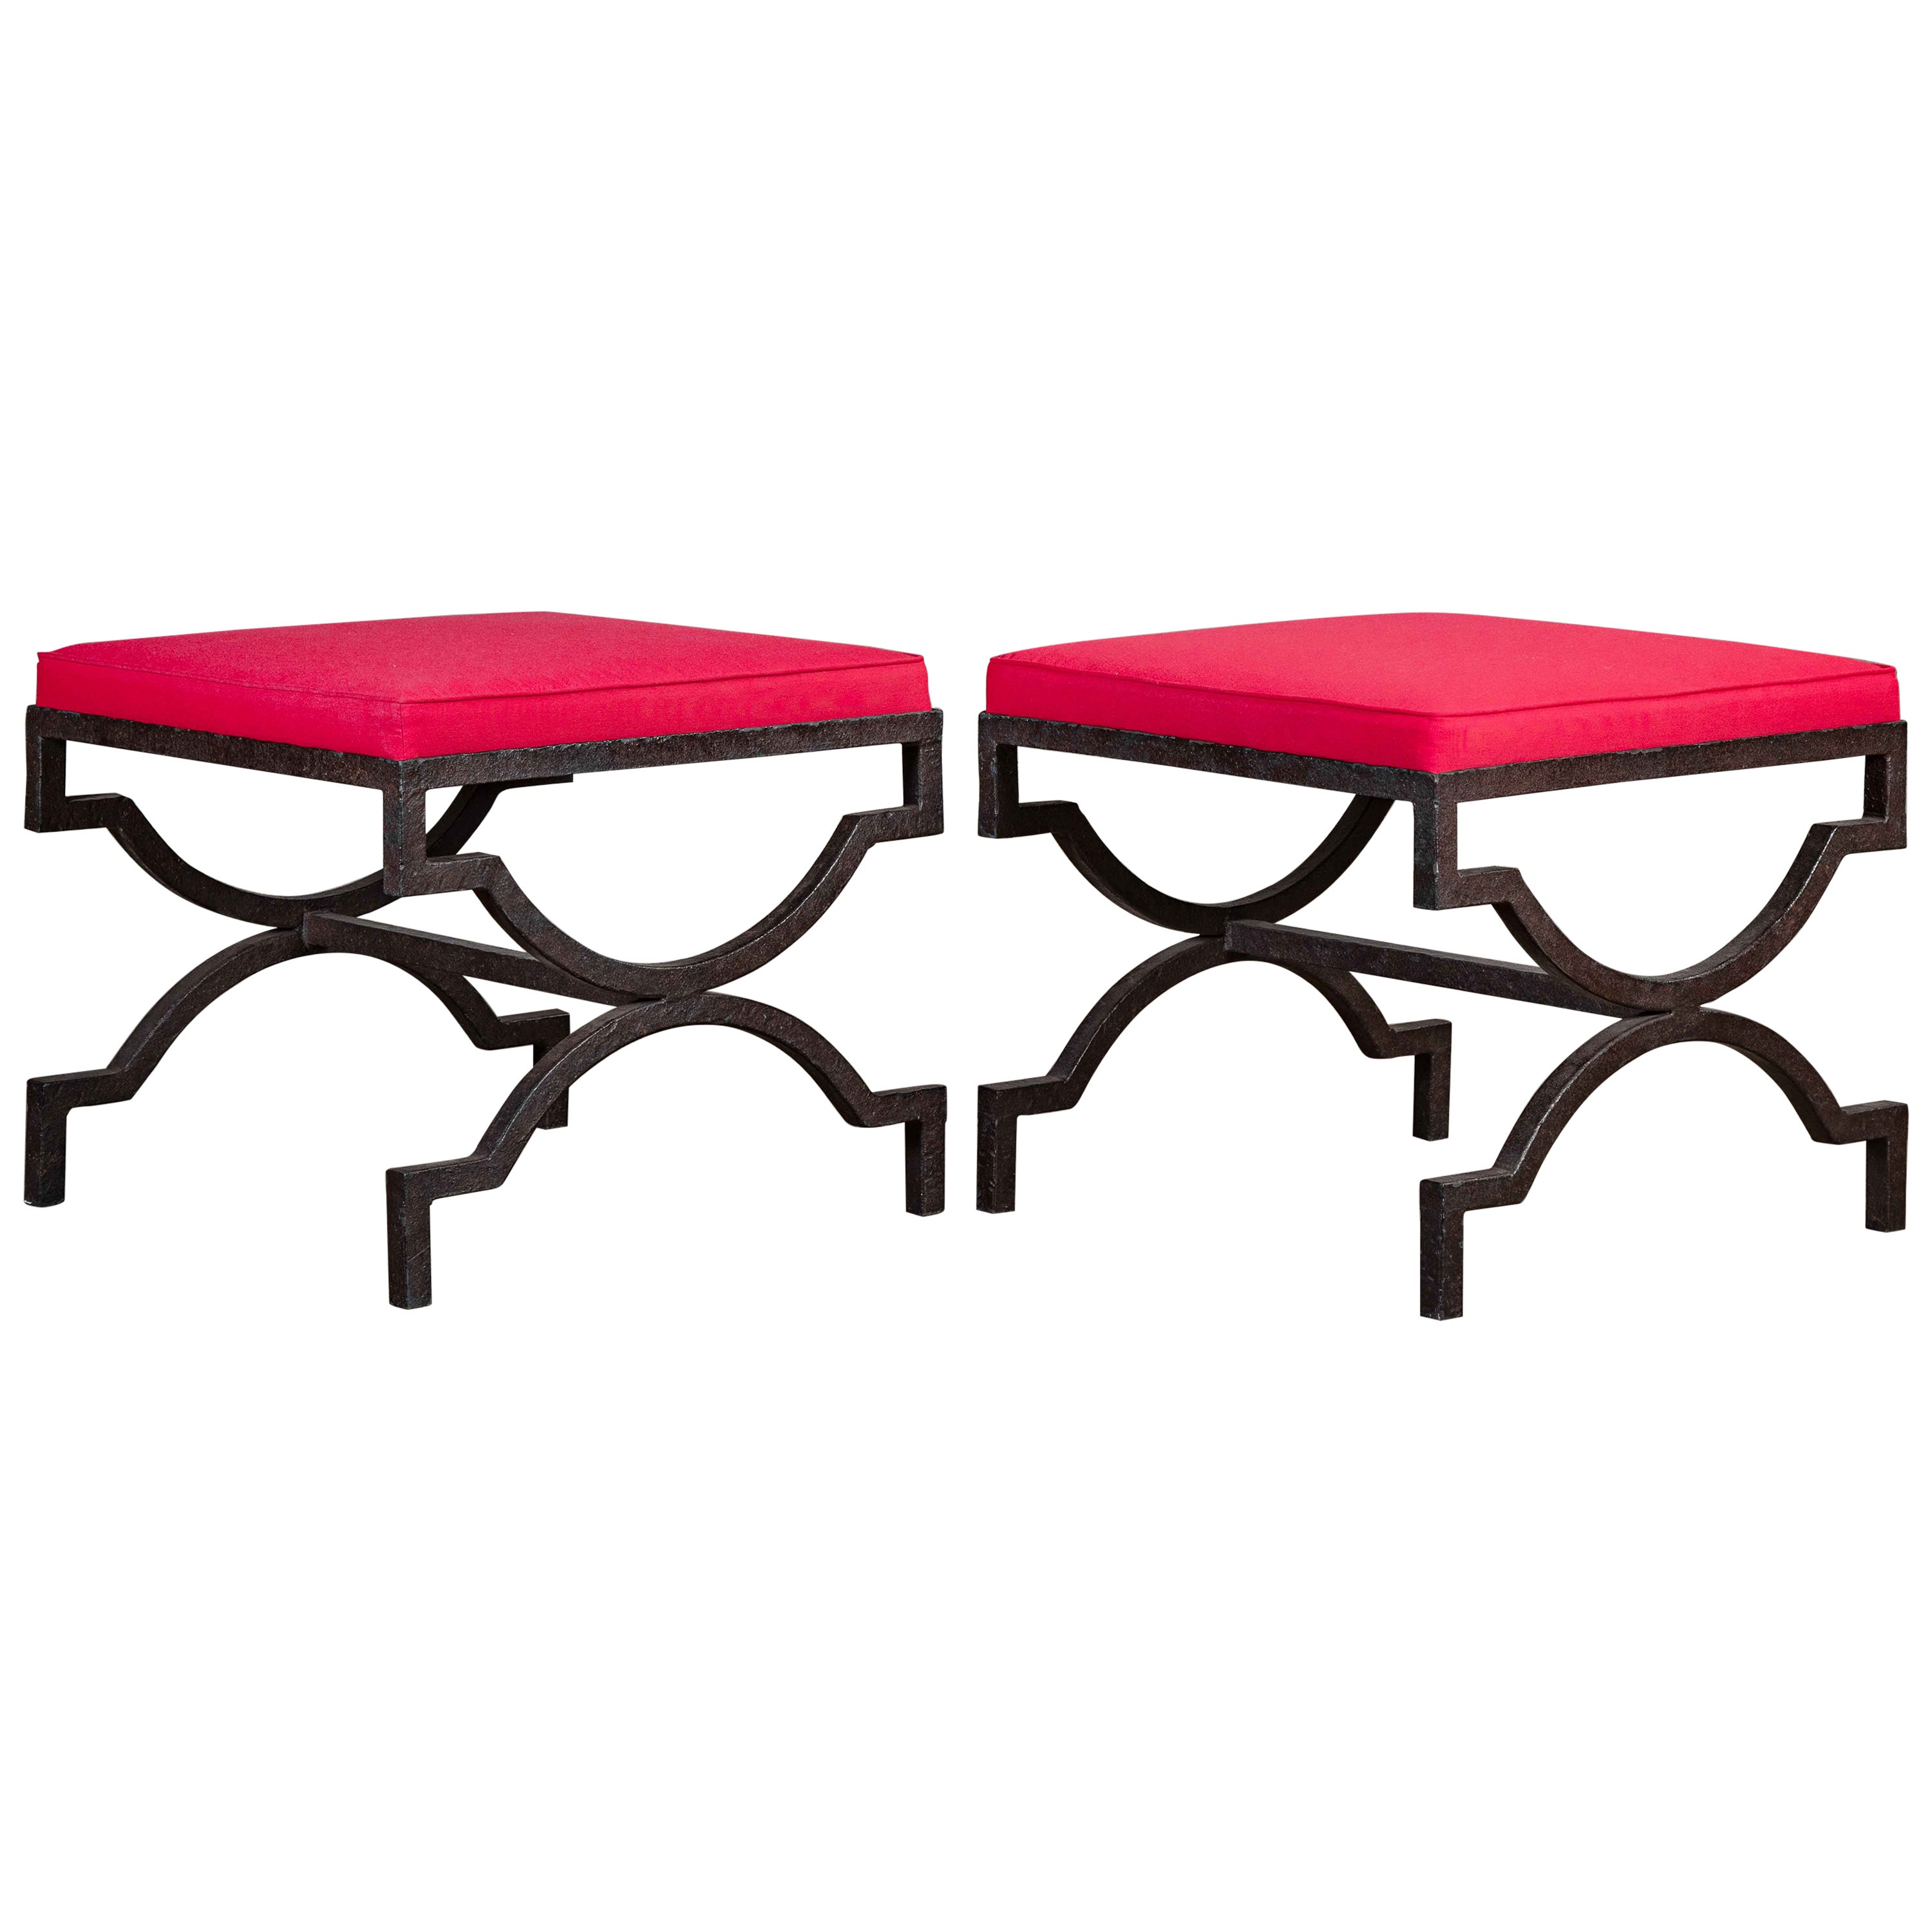 Pair of Iron Benches